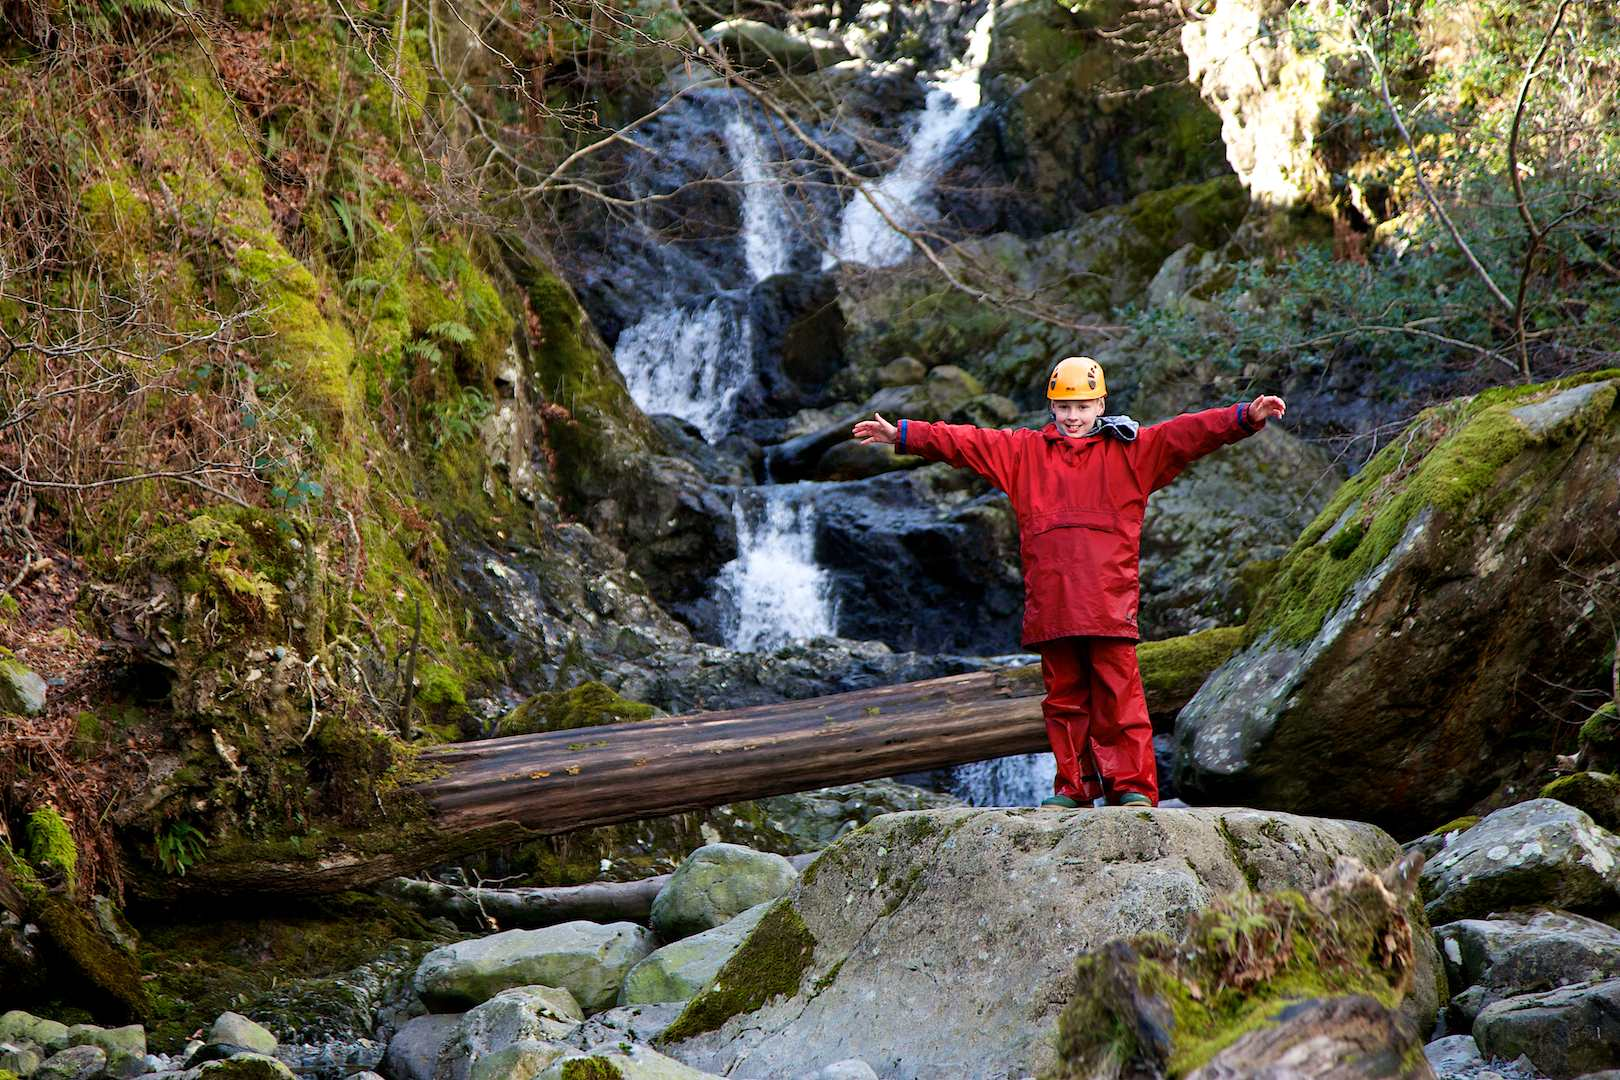 Pupil with arms outstretched by a big waterfall